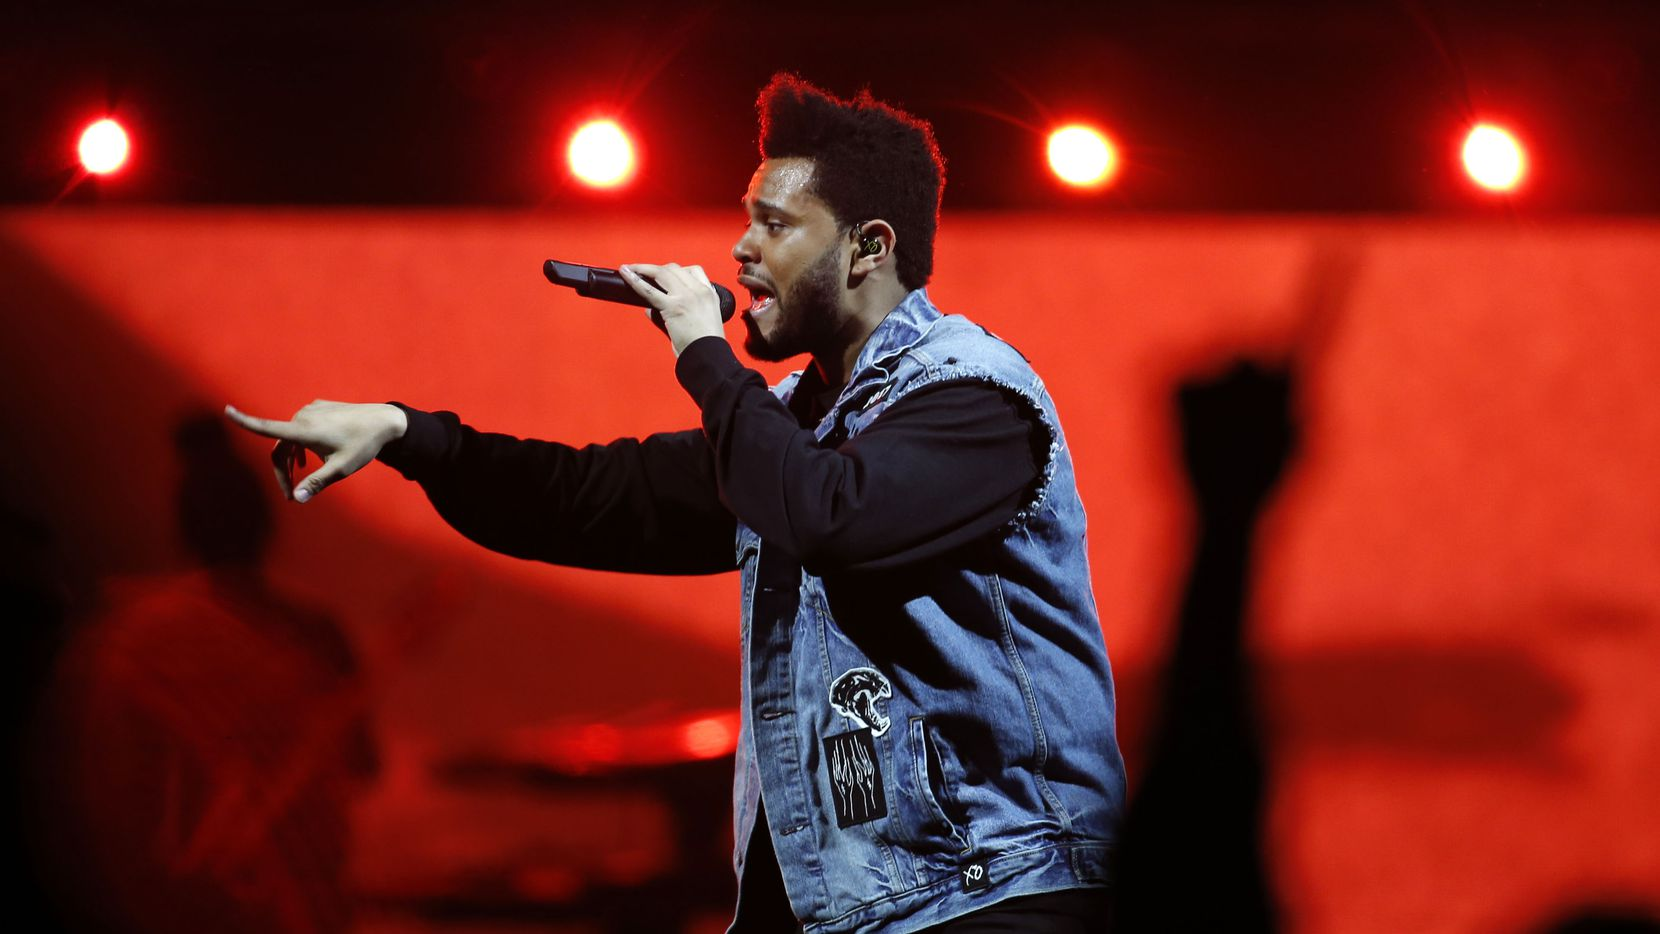 The Weeknd performs at the American Airlines Center in Dallas on Thursday, May 4, 2017.